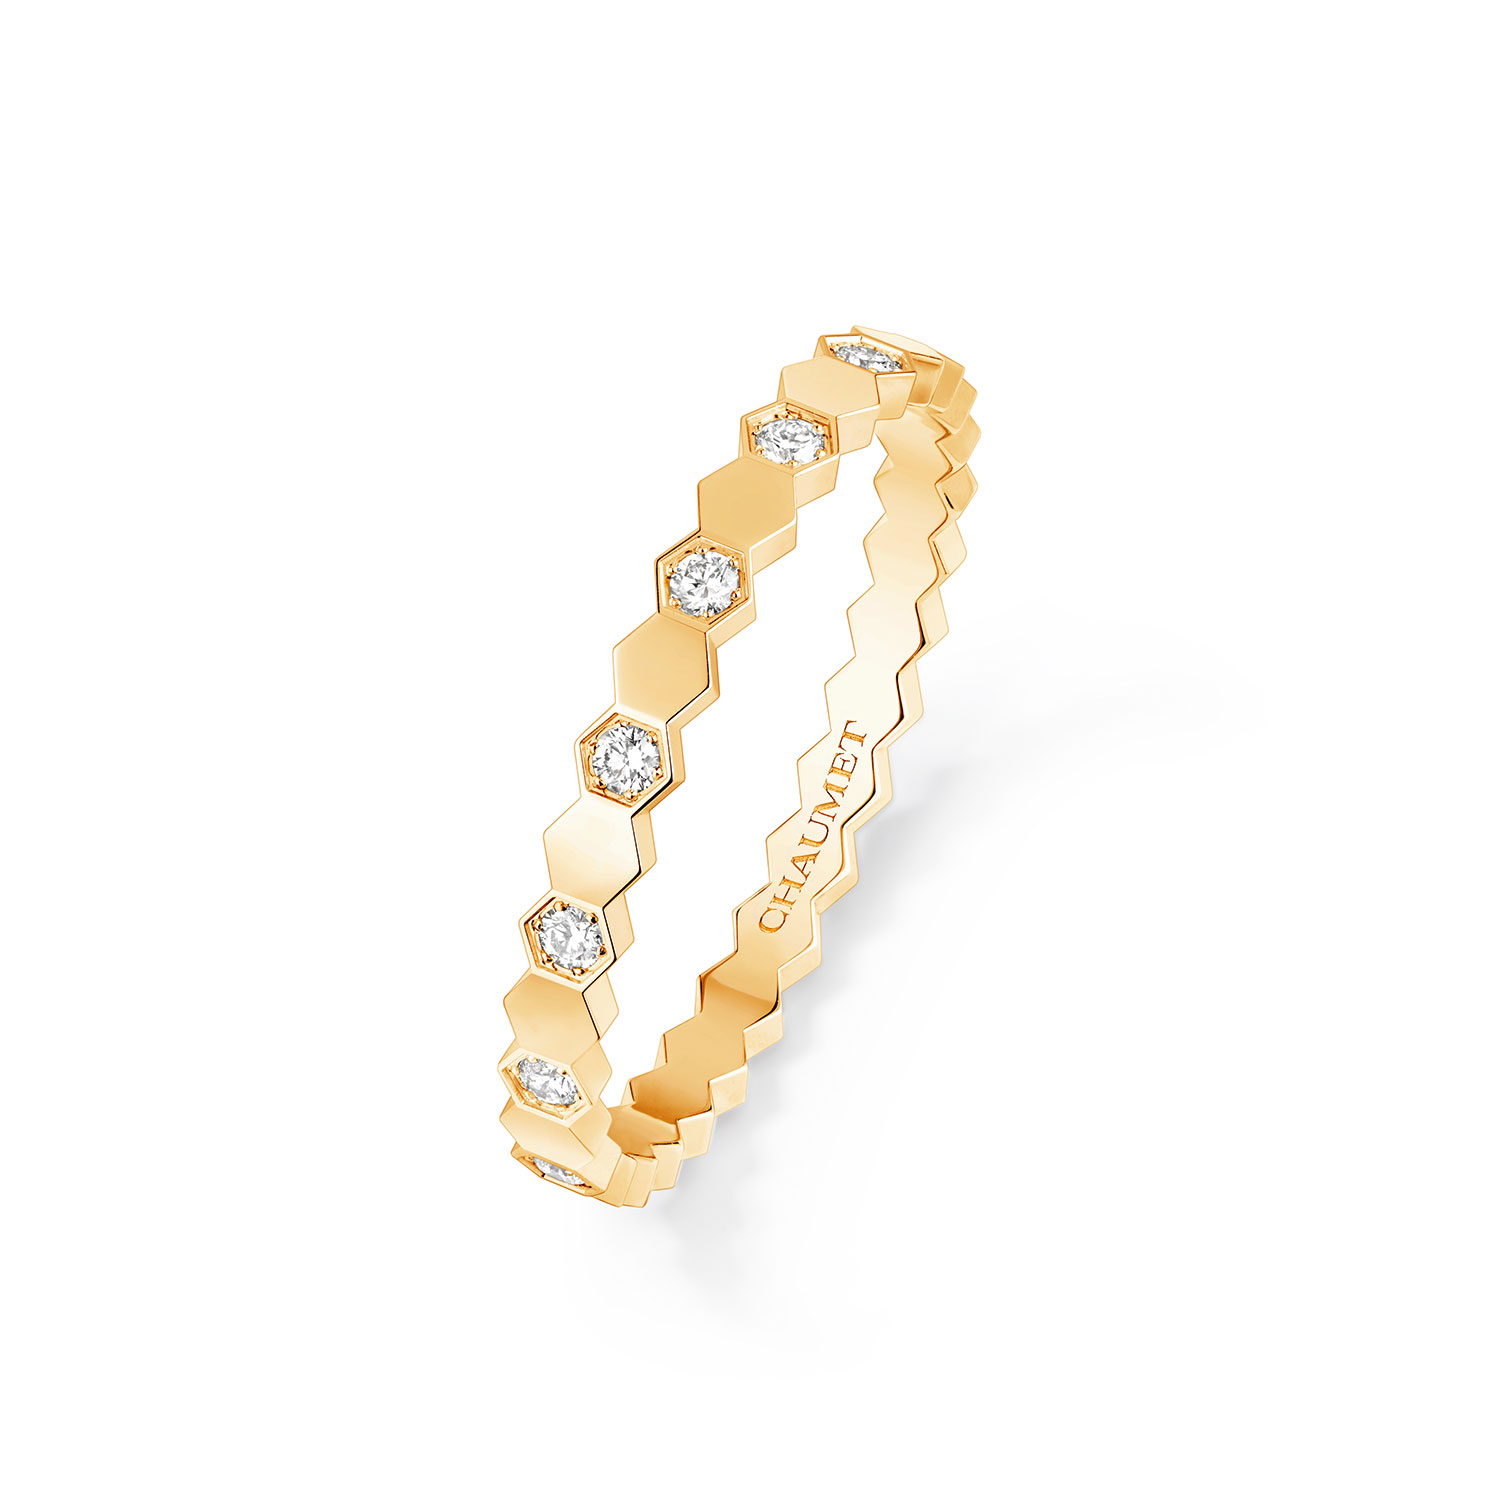 RING BEE MY LOVE YELLOW GOLD HALF PAVED DIA